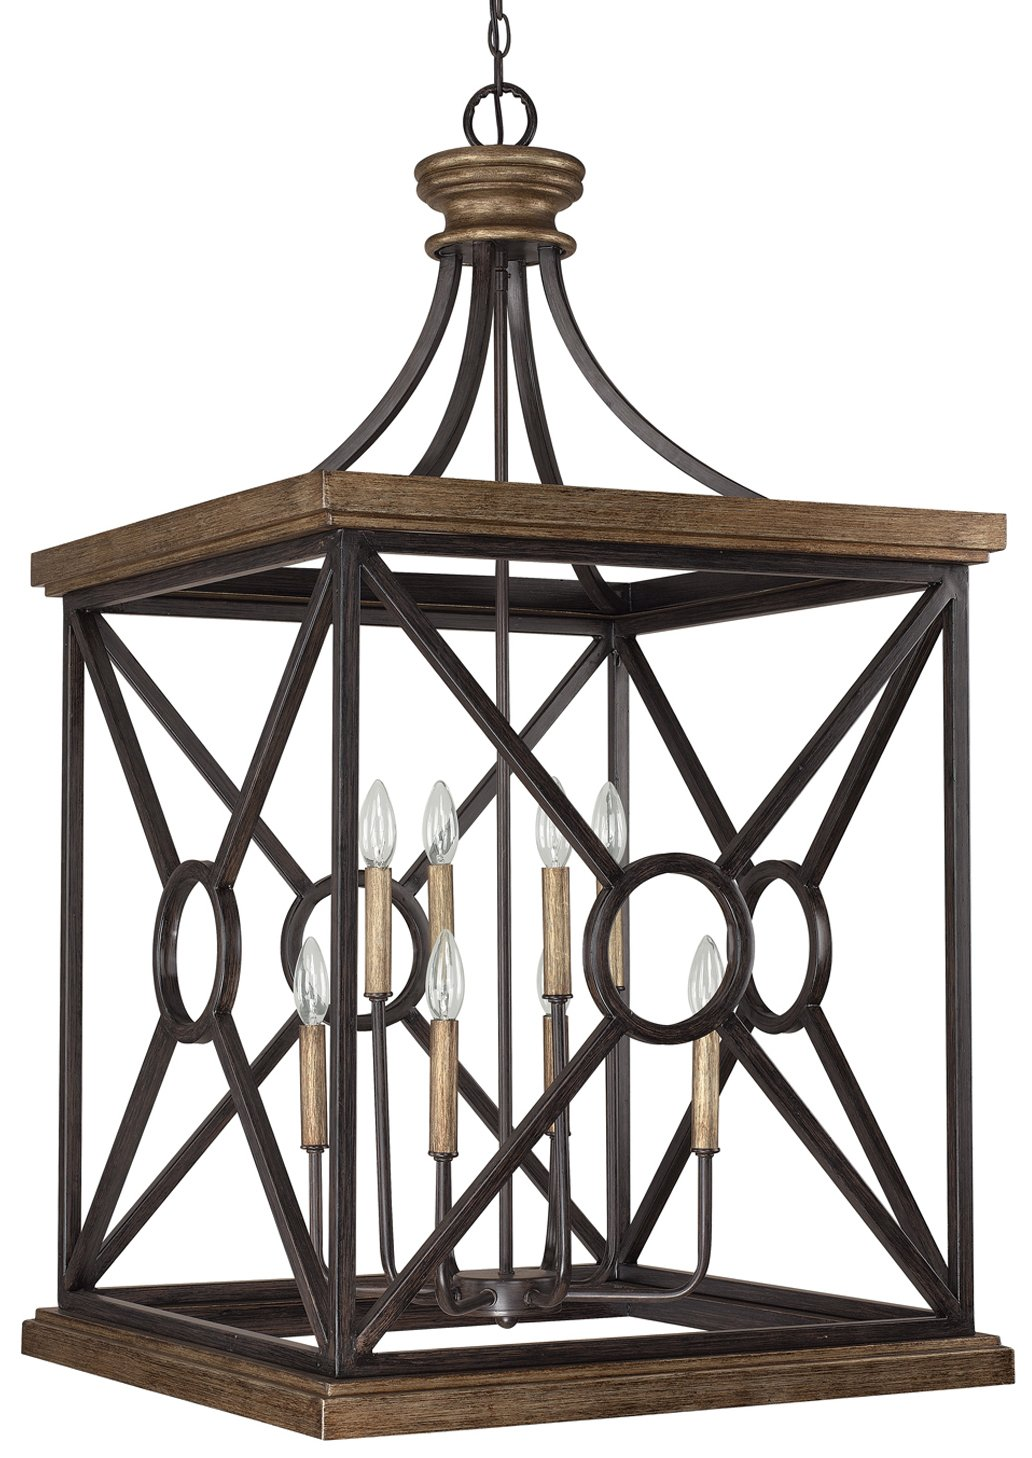 Foyer Ceiling Fan Light : Capital lighting sy landon transitional foyer light cp